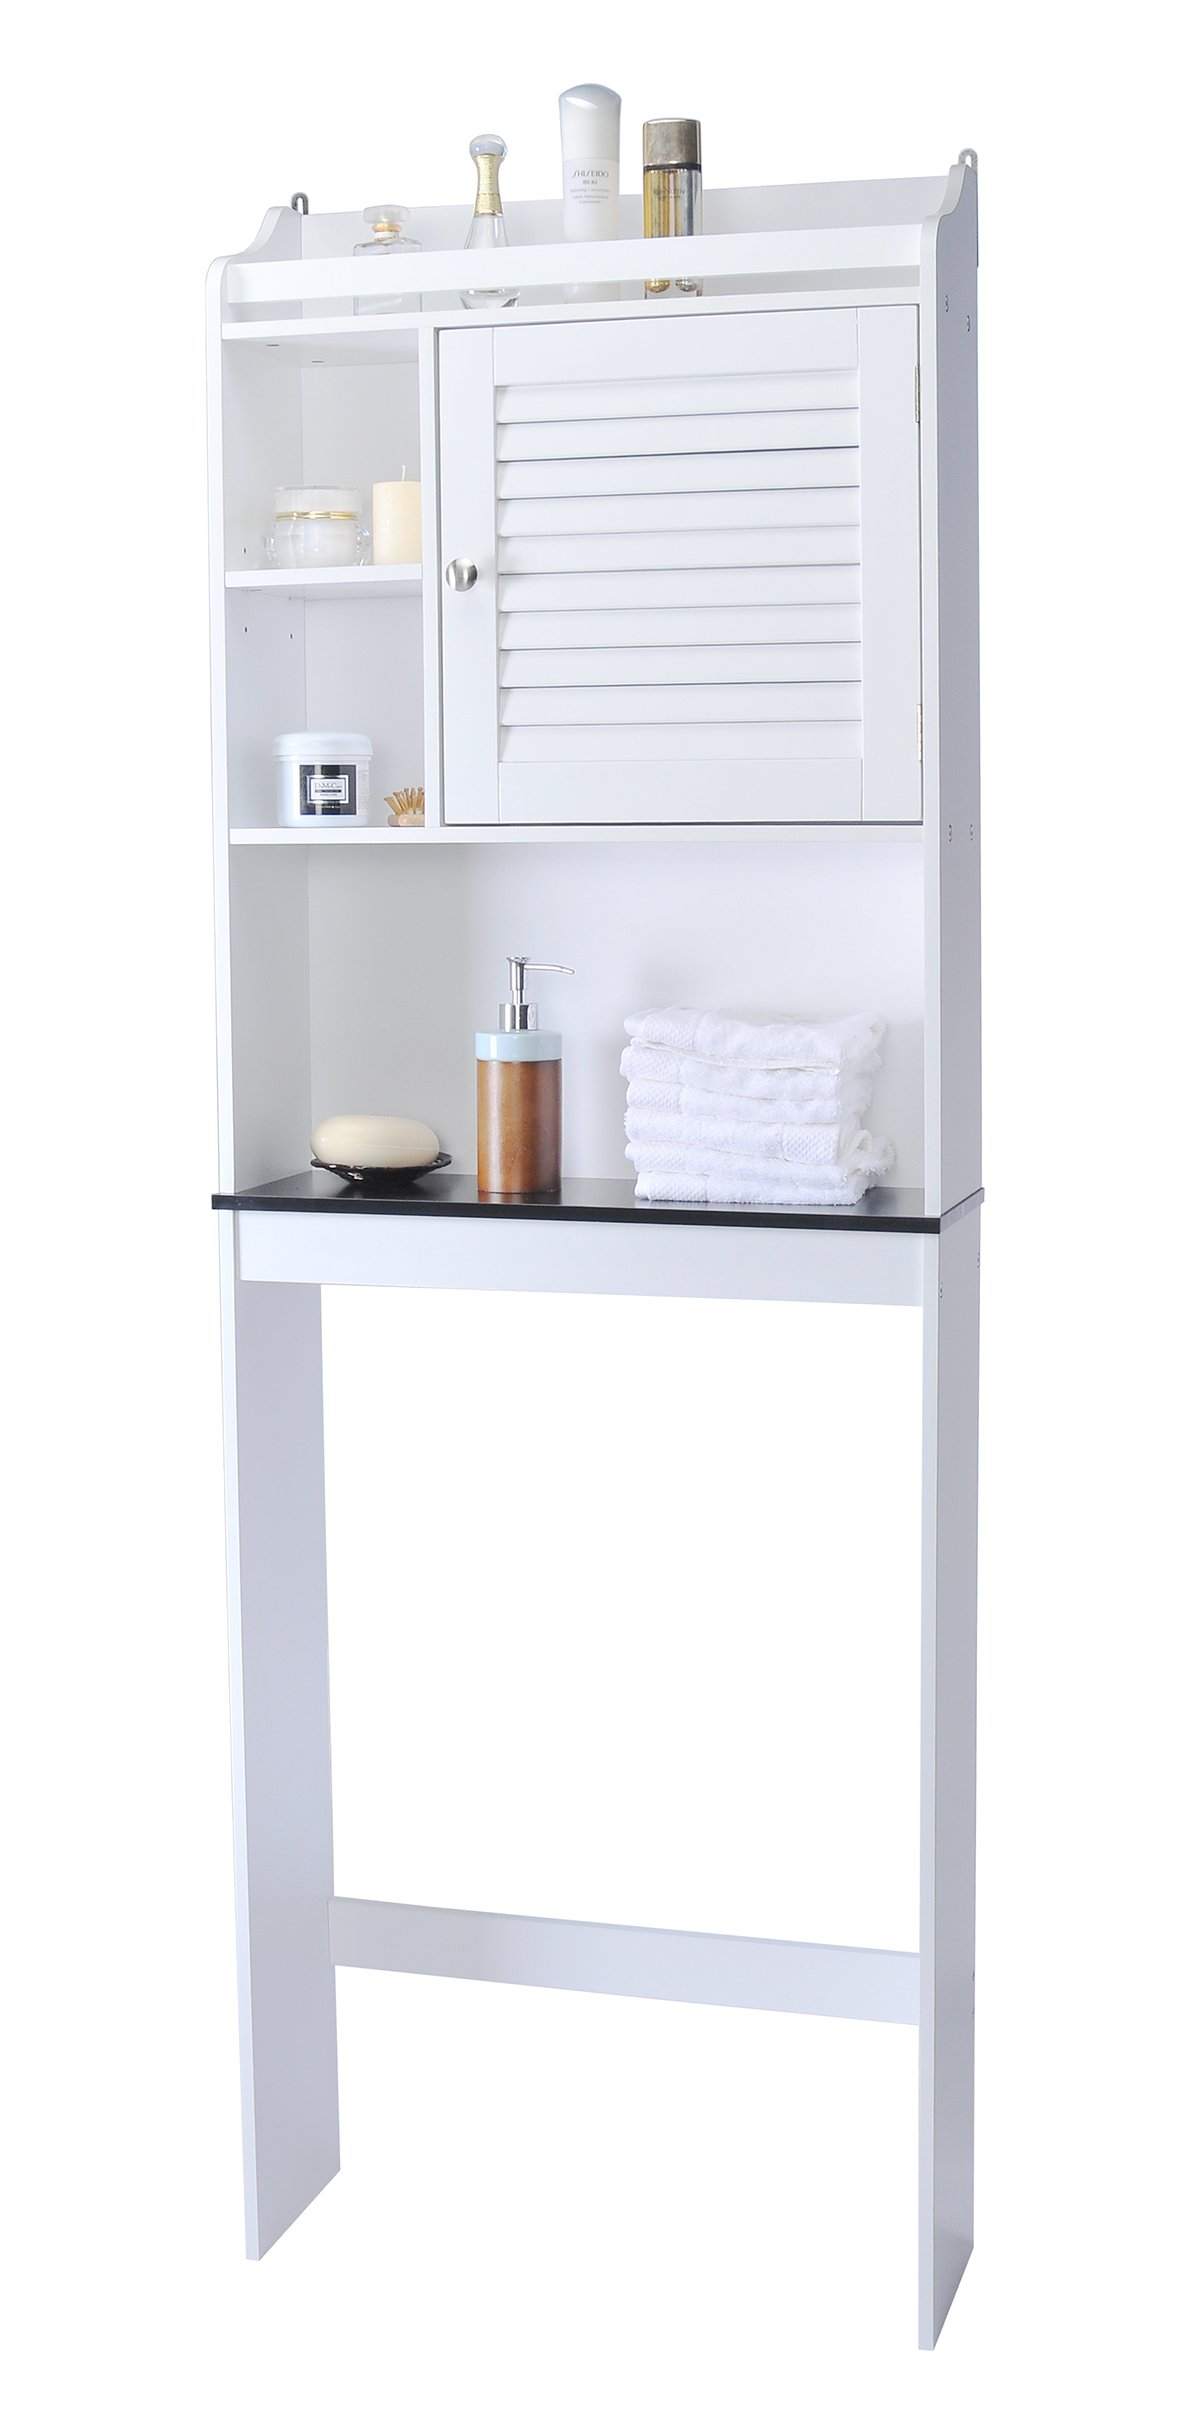 Spirich Home Bathroom Shelf over the toilet, Bathroom Cabinet Organizer over toilet with Louver Door, White Finish by Spirich Home (Image #2)